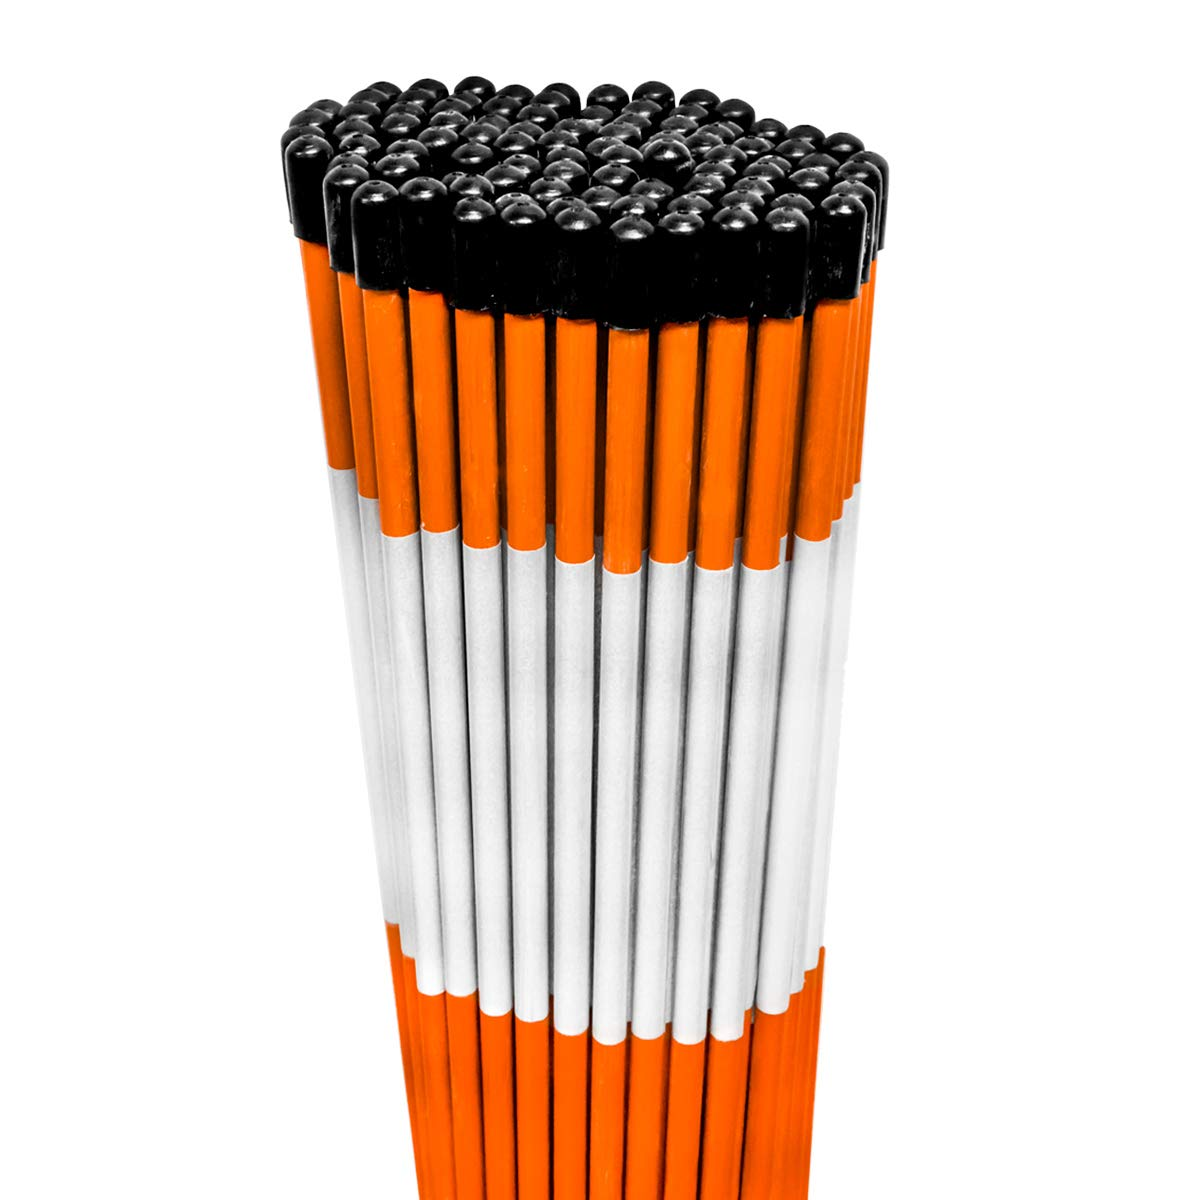 100PK 48'' Heavy Duty 5/16'' Diameter Hi Visibility Safety Orange Driveway Markers w/Reflective Tape - Rods Stakes Guides by Replaces Safety Orange Markers (Image #1)